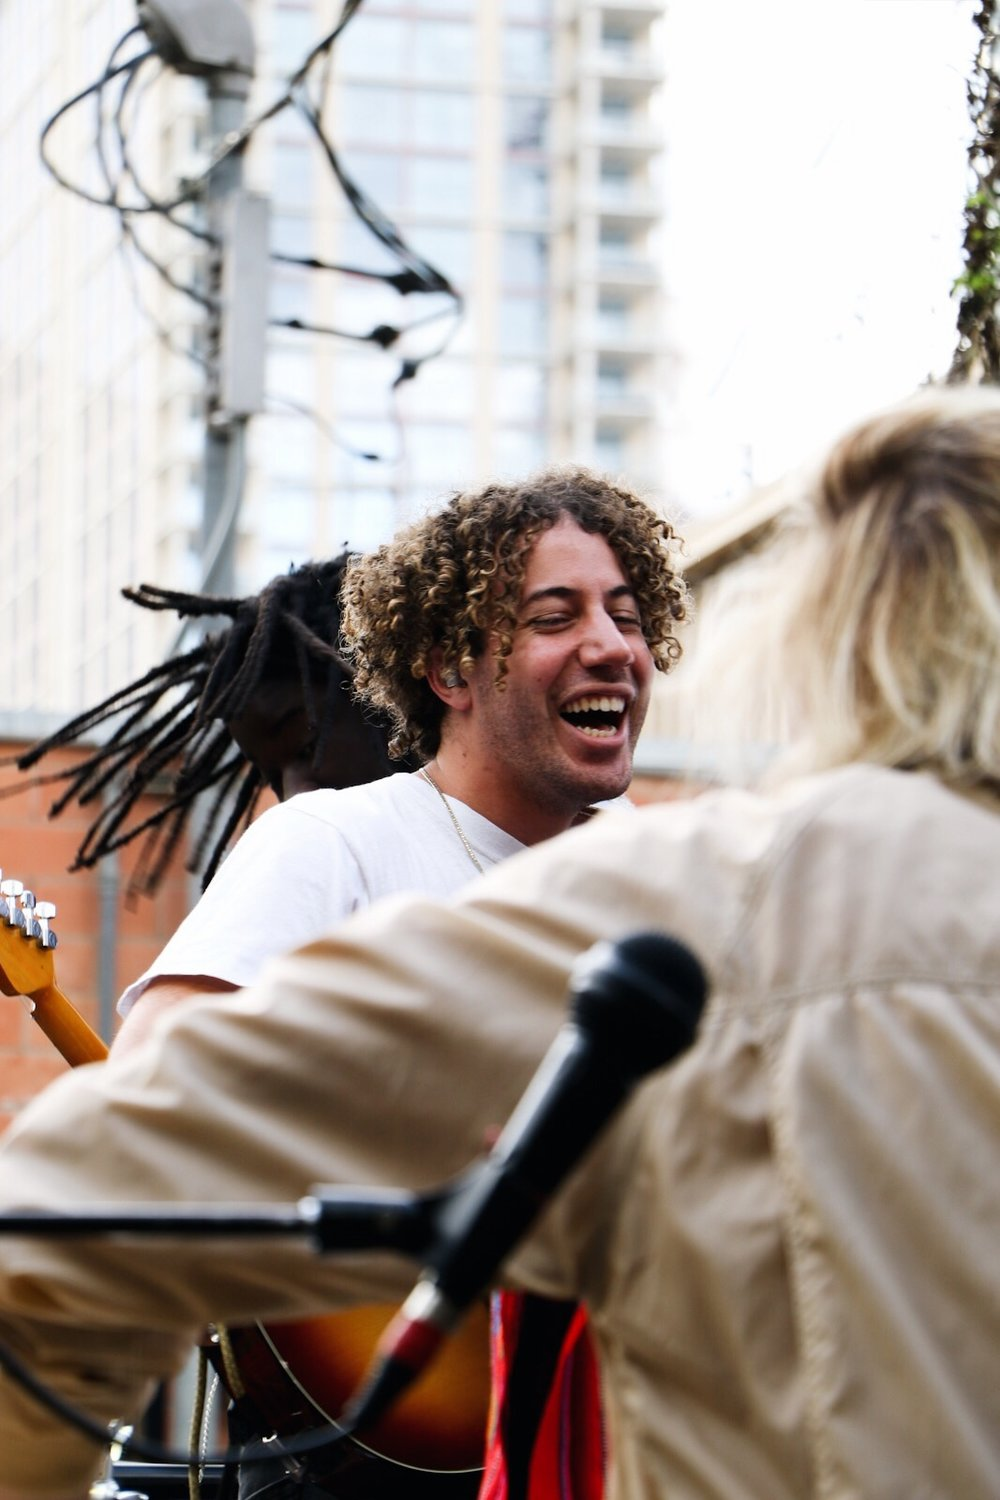 Danny Miller of Lewis Del Mar shares a laugh with the band in between songs.